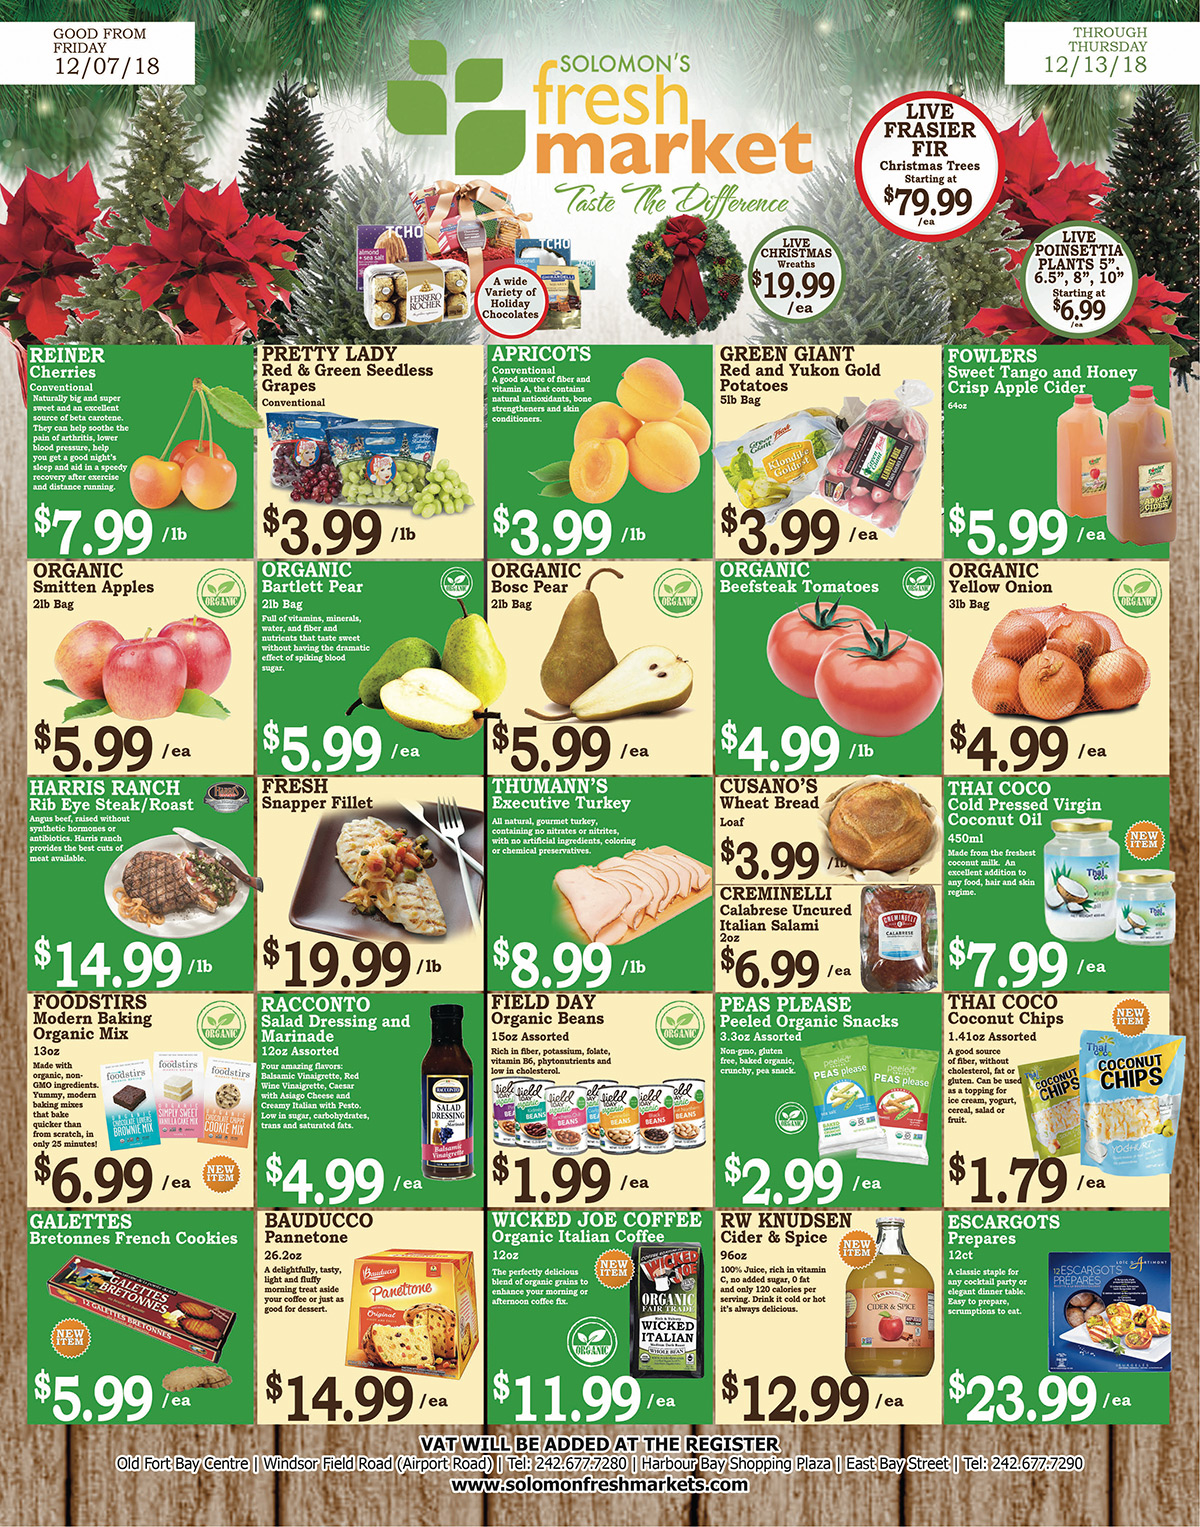 Solomons Fresh Market. Weekly Savings!